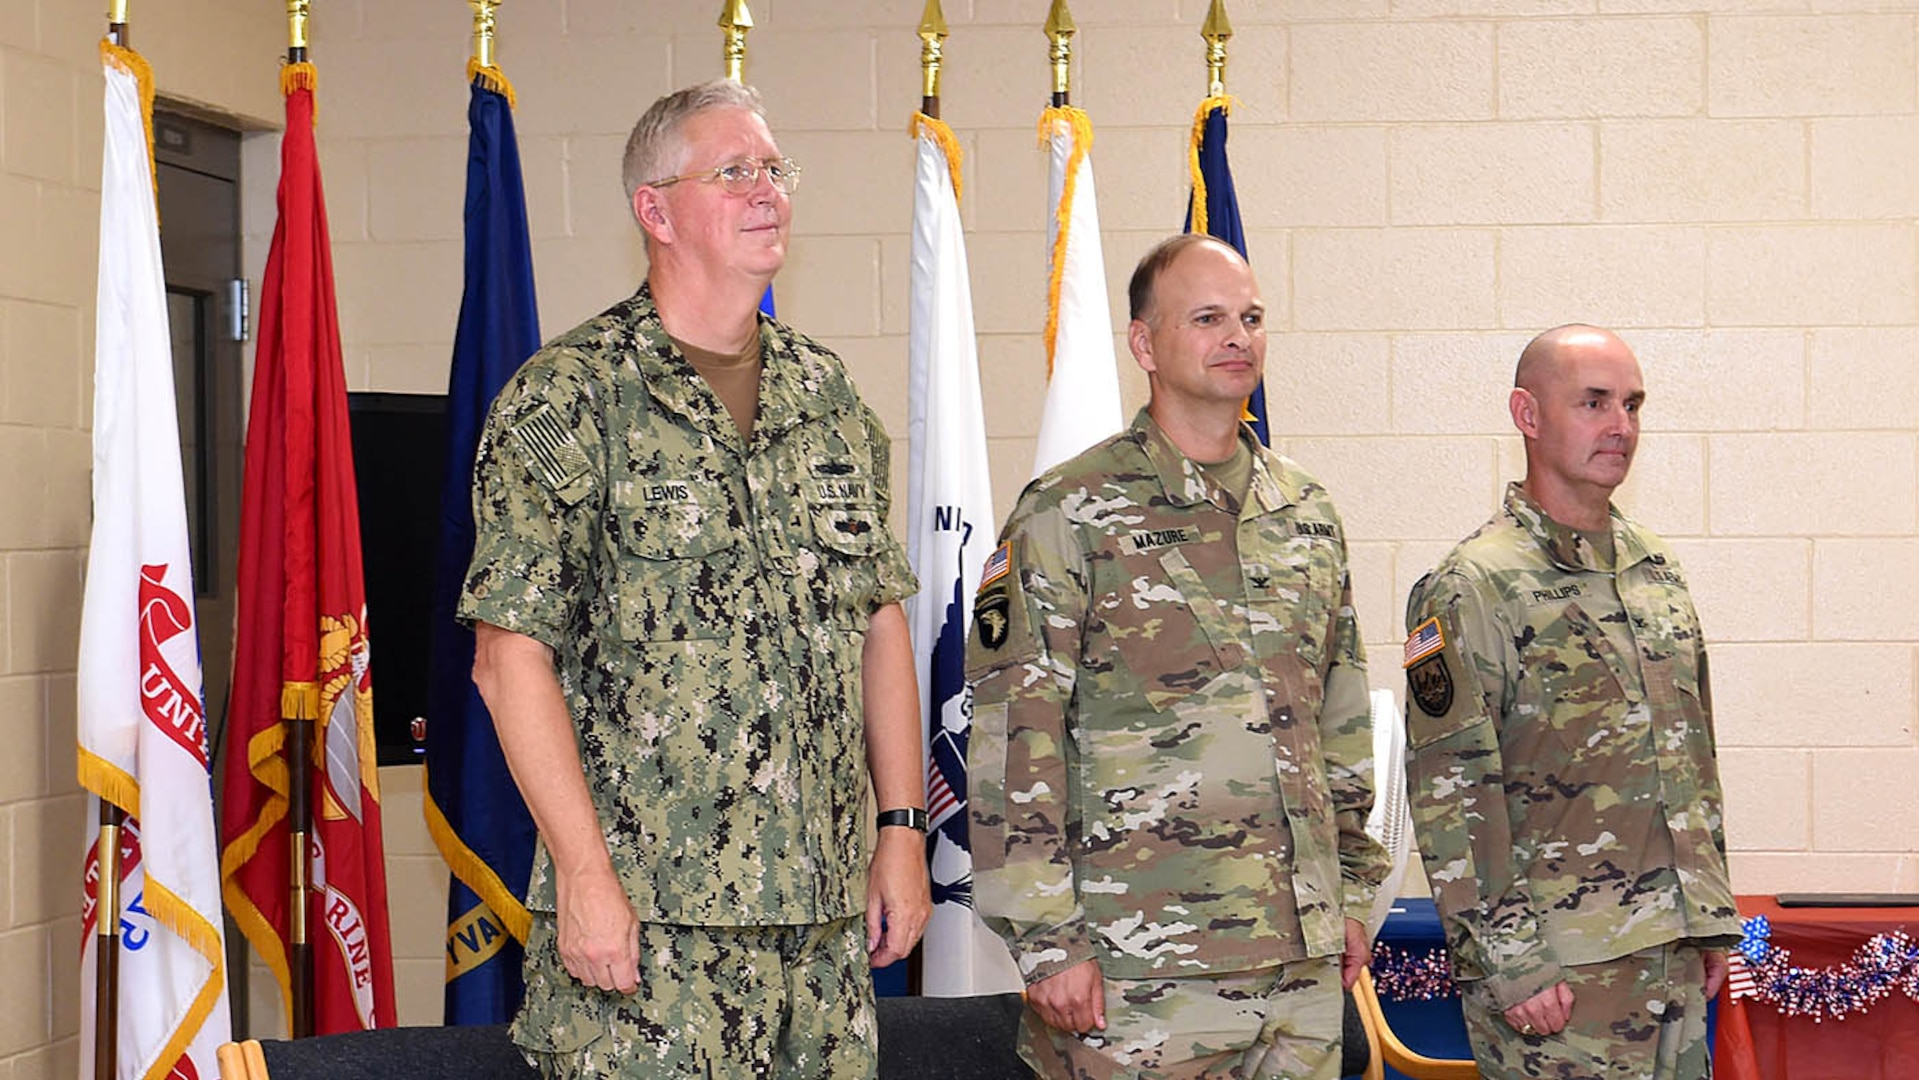 Three commanders standing at attention in front of U.S. and service flags.